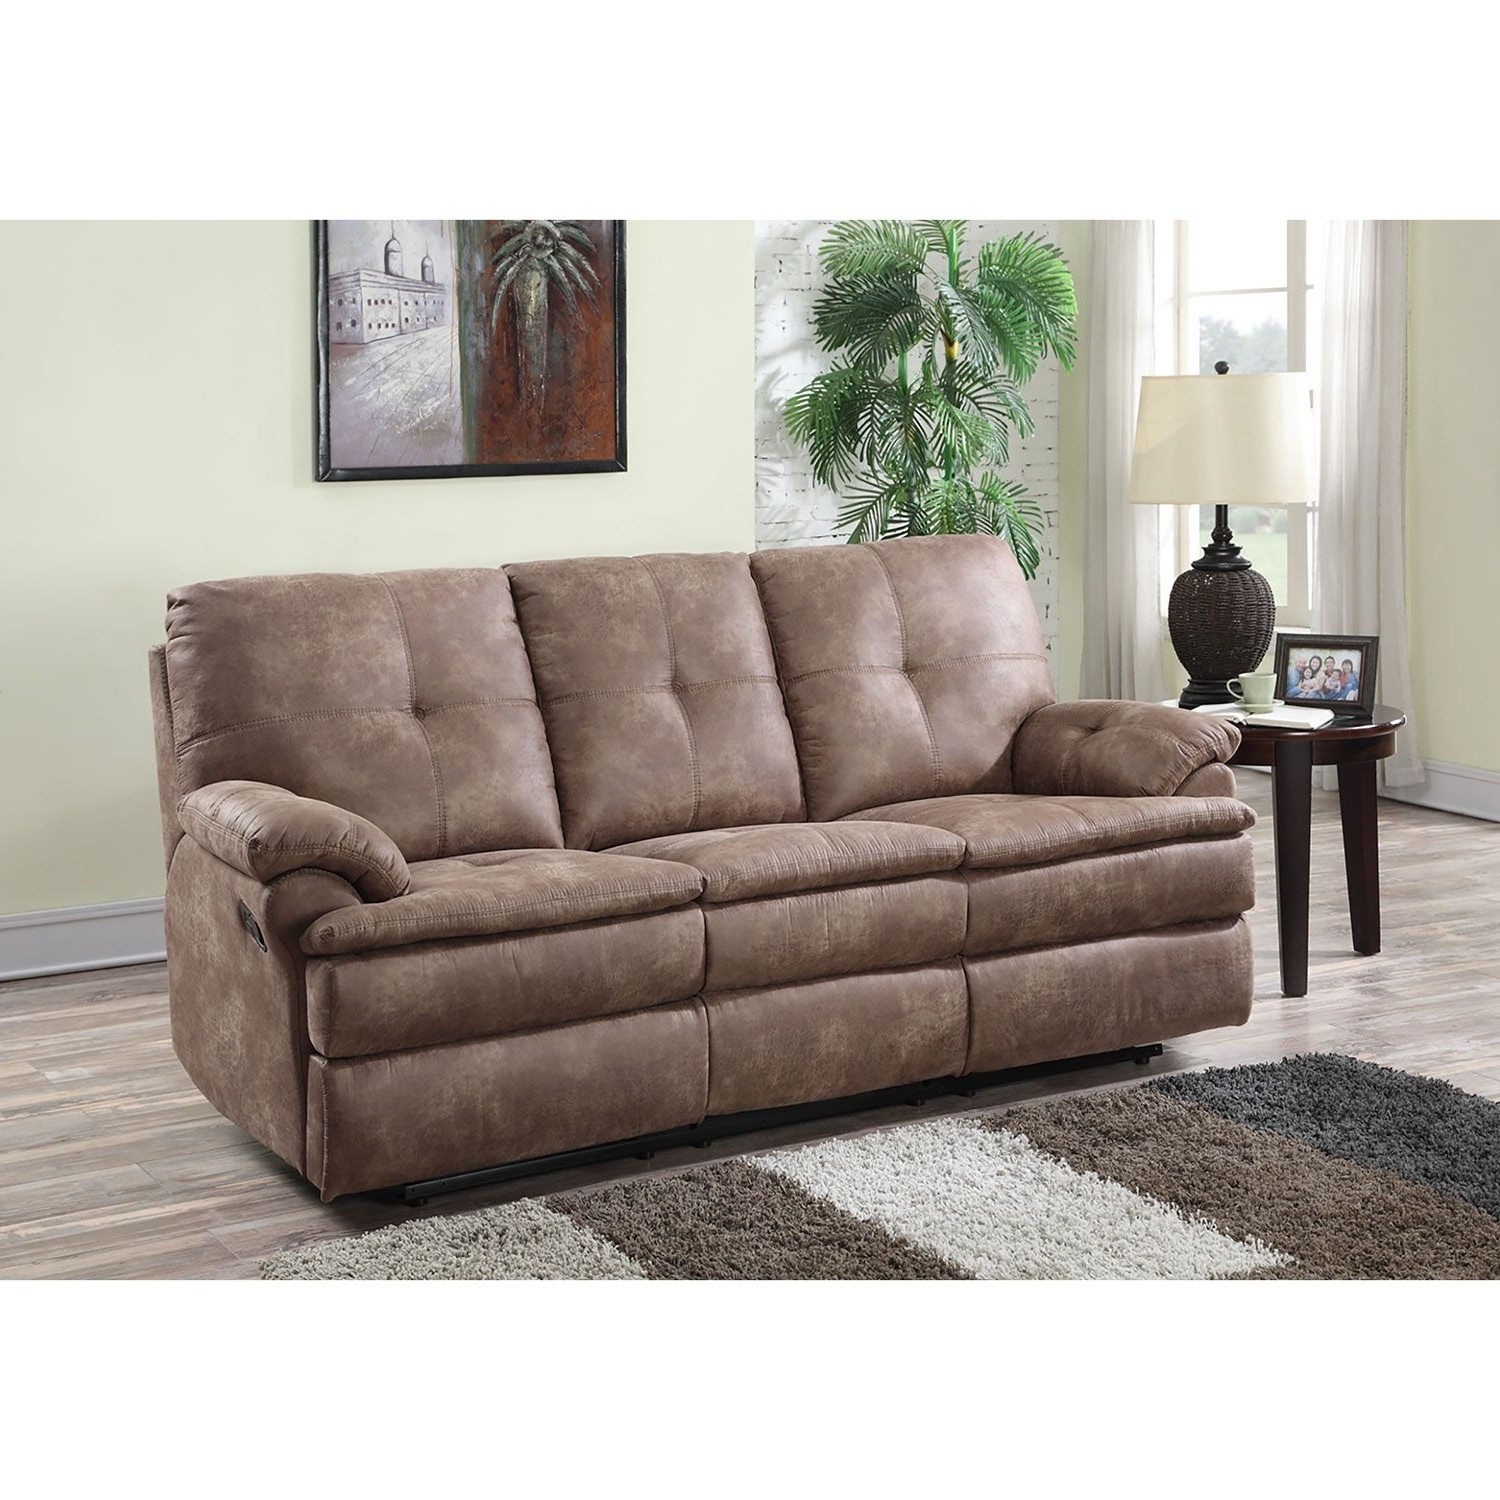 Most Recent Sams Club Sectional Sofas Within Sofa : Two Seater Fabric Recliner Sofa Fabric Reclining Sofa And (View 7 of 15)